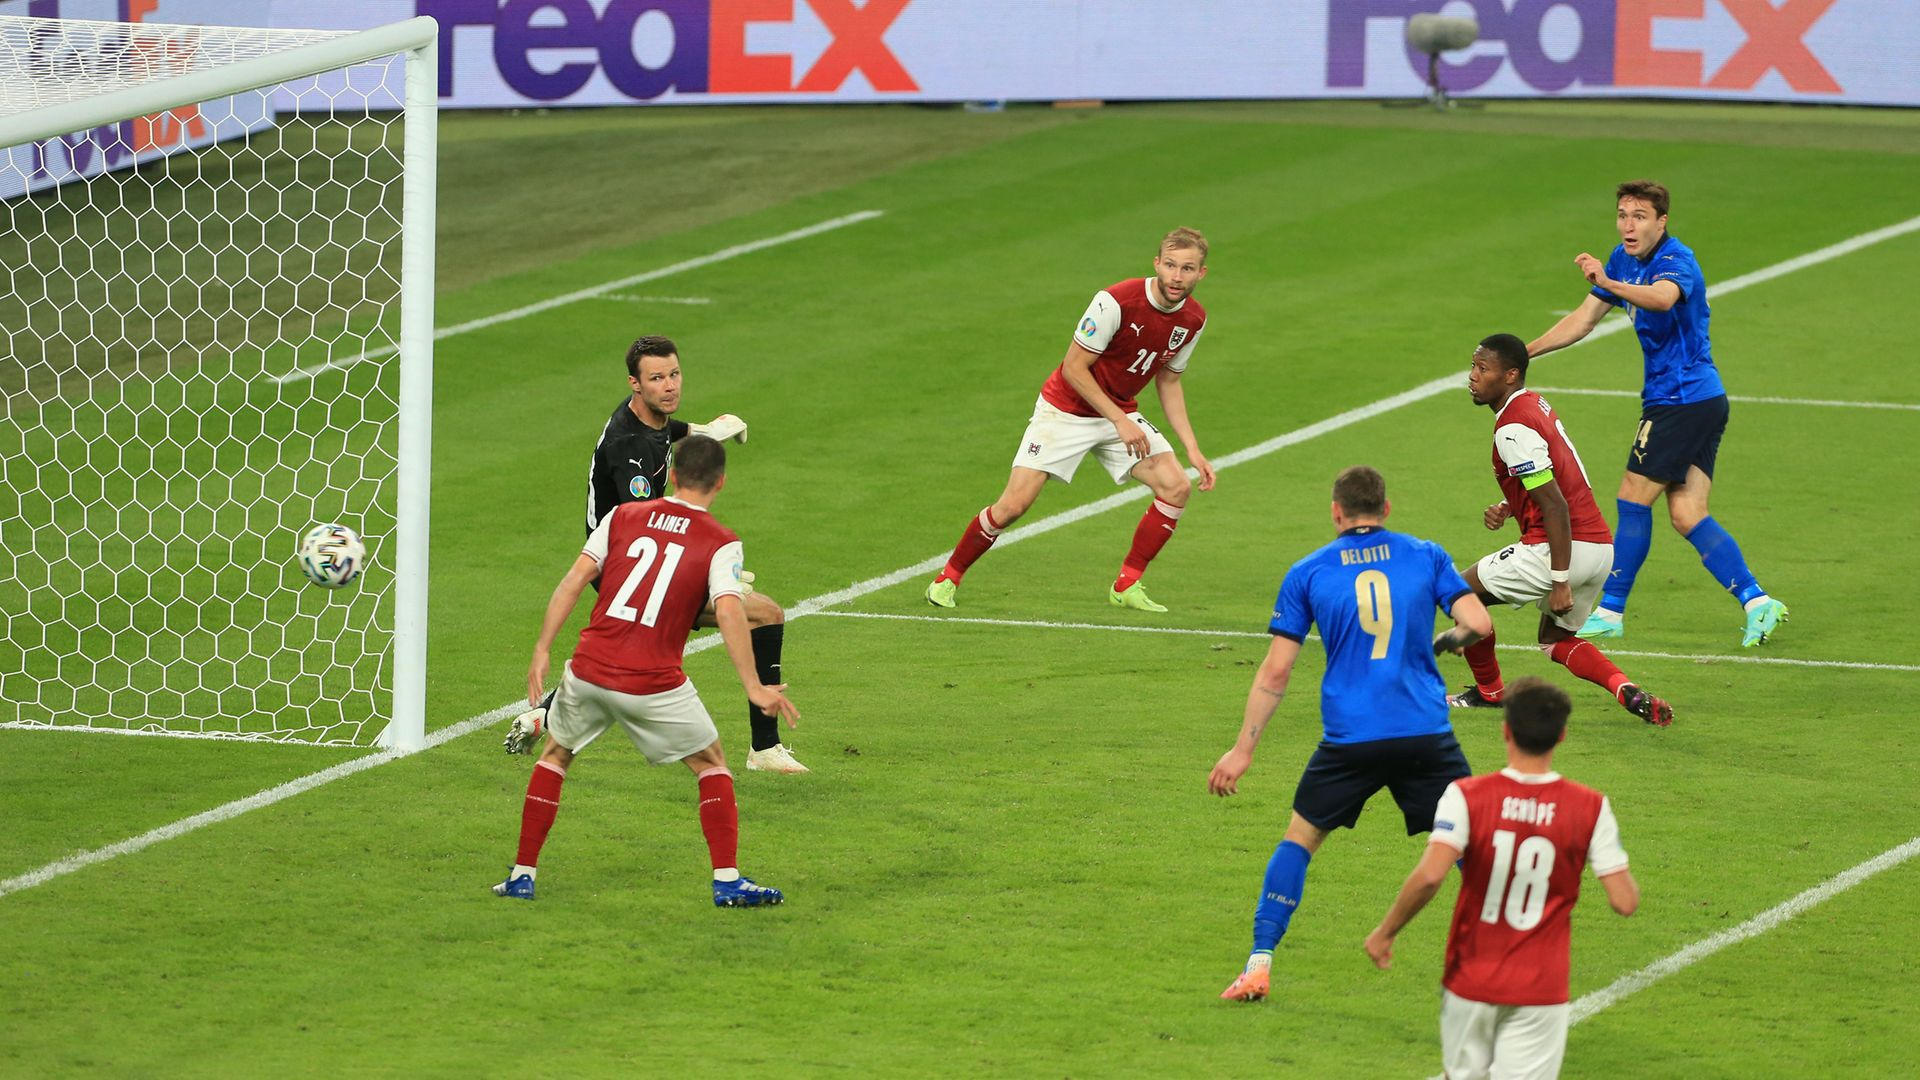 Federico Chiesa of Italy, far right, scores Italy's opening goal against Austria in their Euros round of 16 victory - Credit: Photo by Simon Stacpoole/Offside/Offside via Getty Images